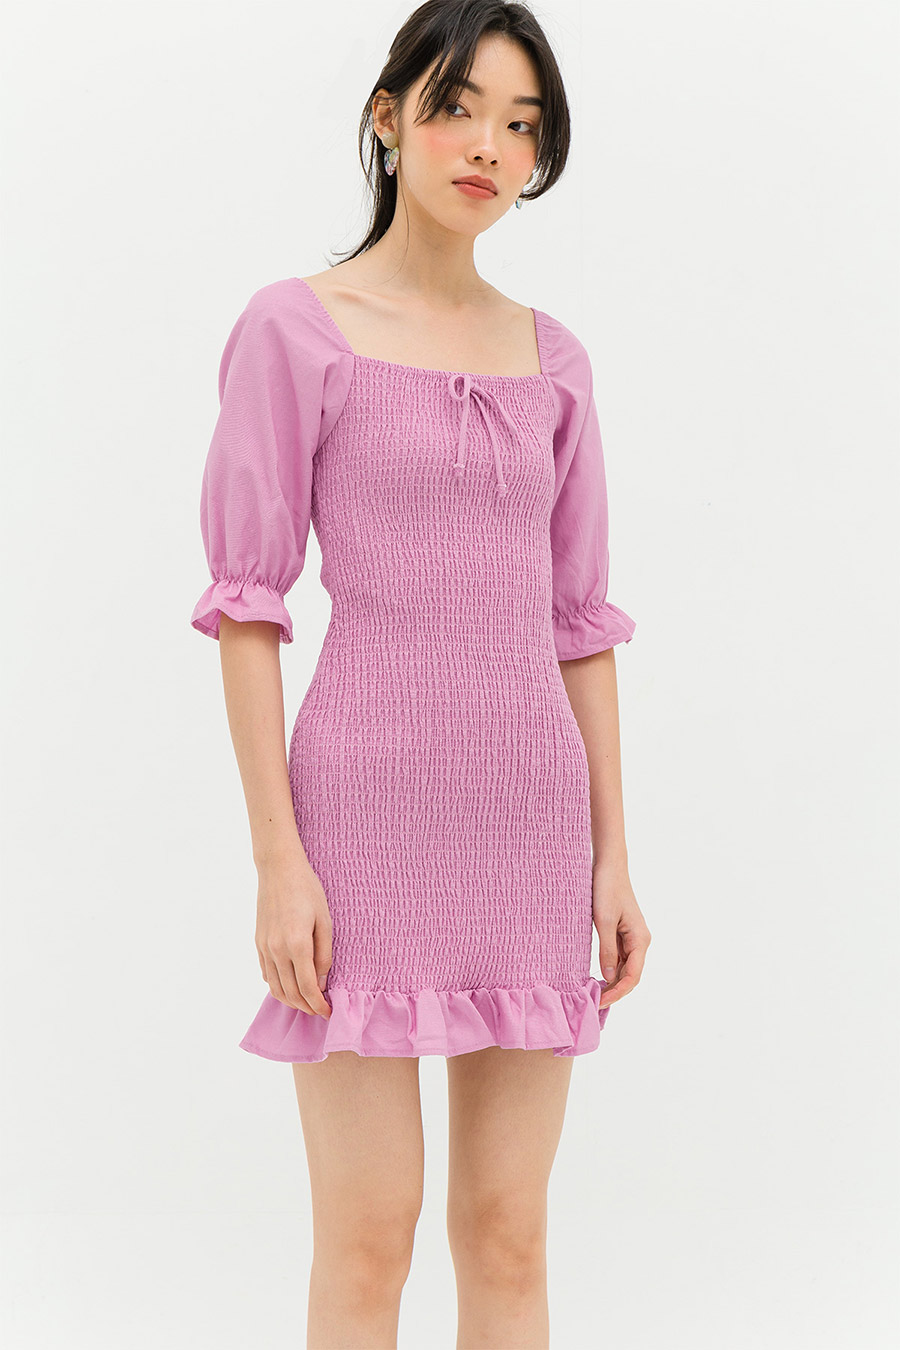 PAULIN DRESS - LIGHT ORCHID